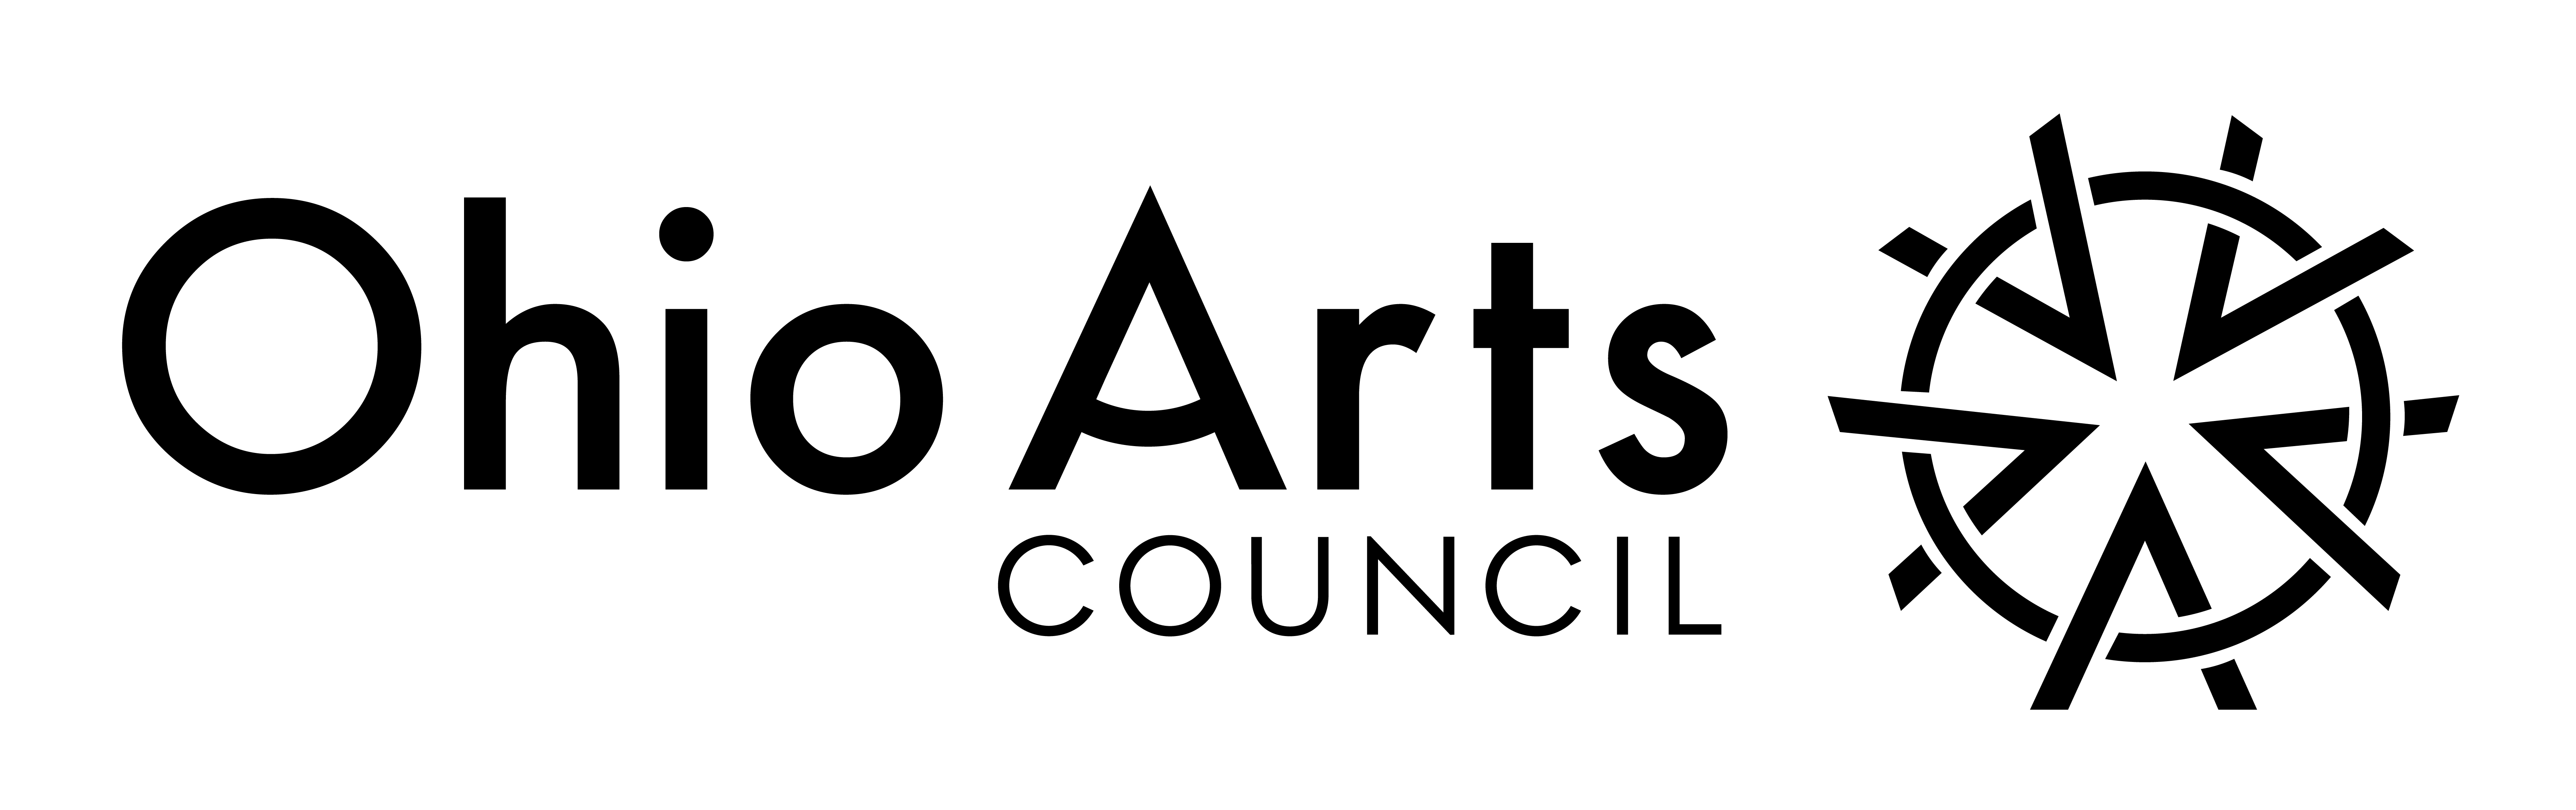 Ohio Arts Council logo